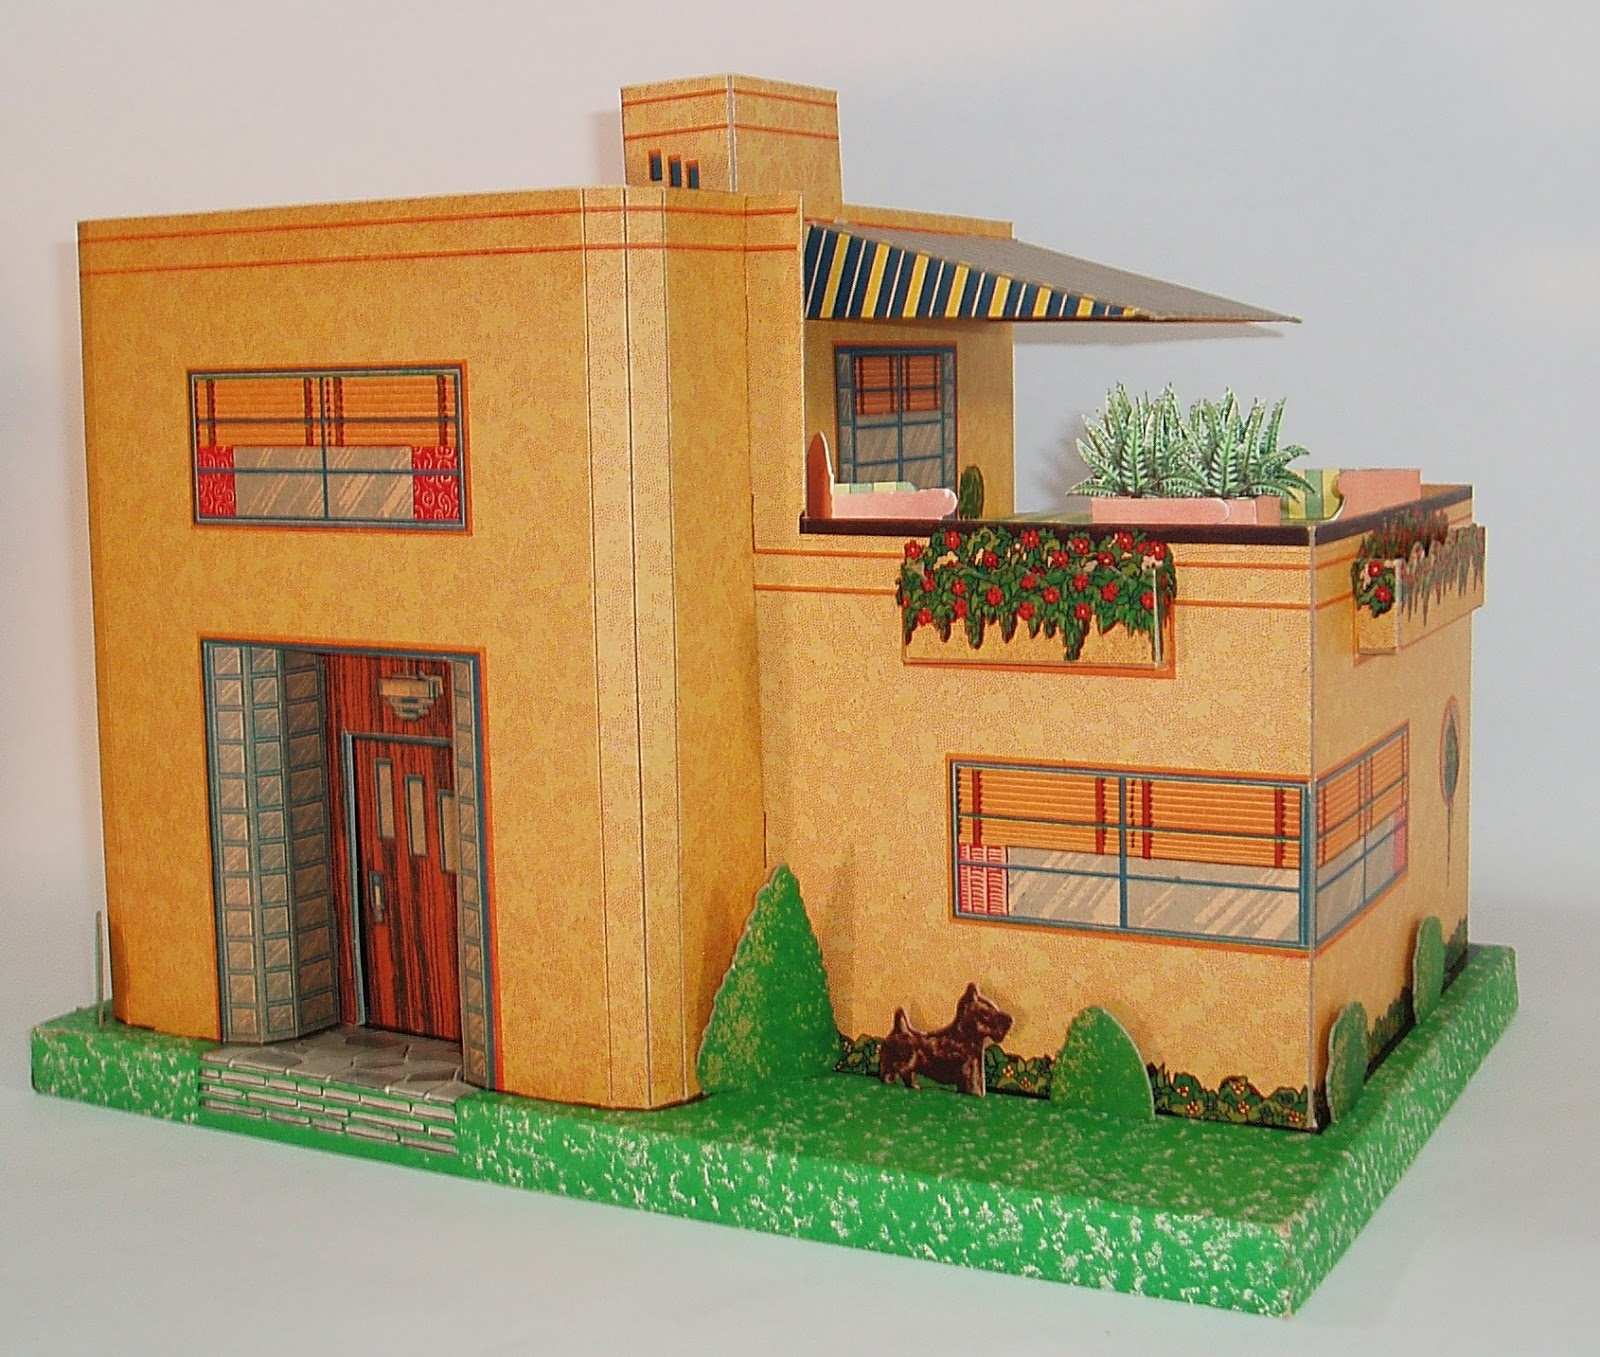 My Vintage Dollhouses: An ART DECO birthday house!